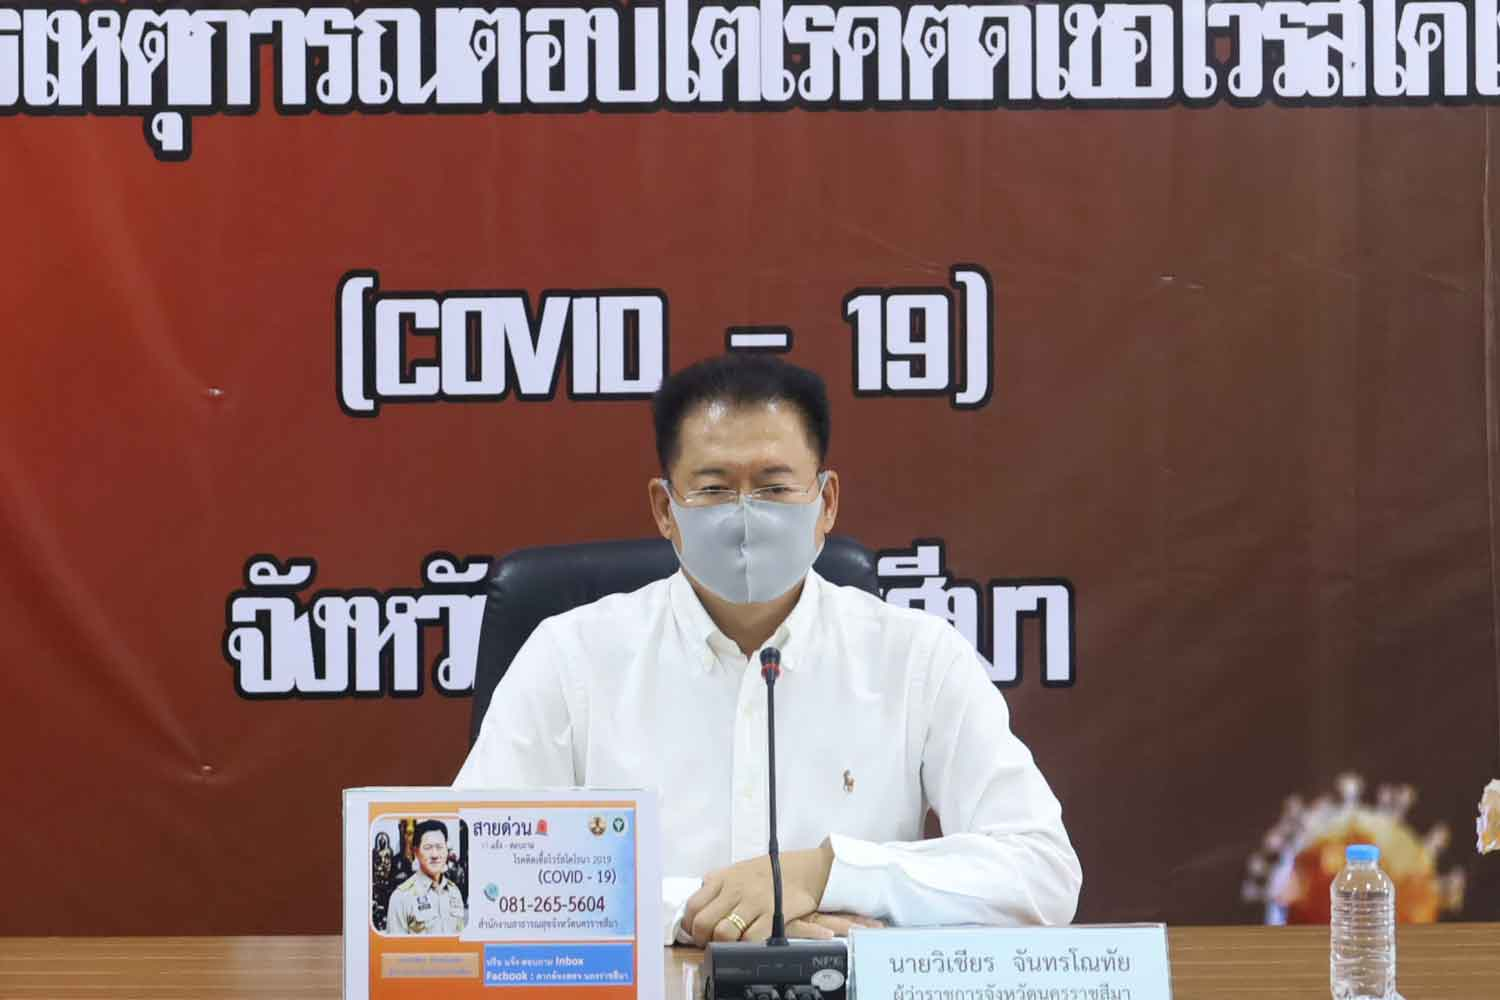 Nakhon Ratchasima governor Wichian Chantaranothai announces another Covid-19 case in the northeastern province on Tuesday. (Photo: Prasit Tangprasert)